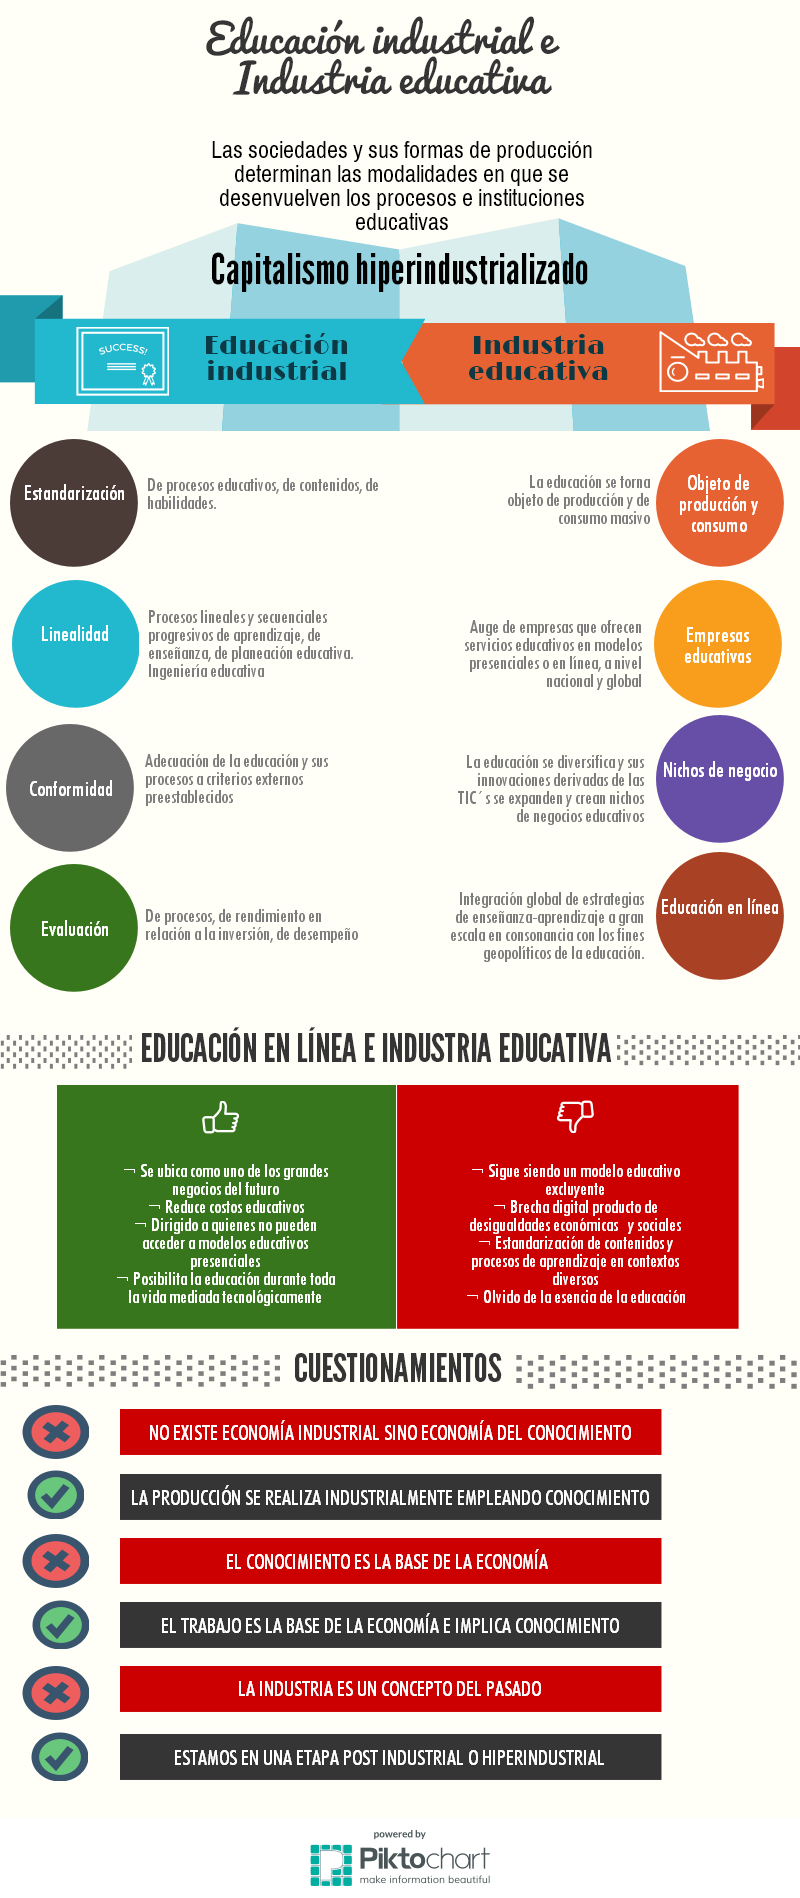 educacion-industrial-e-industria-educativa